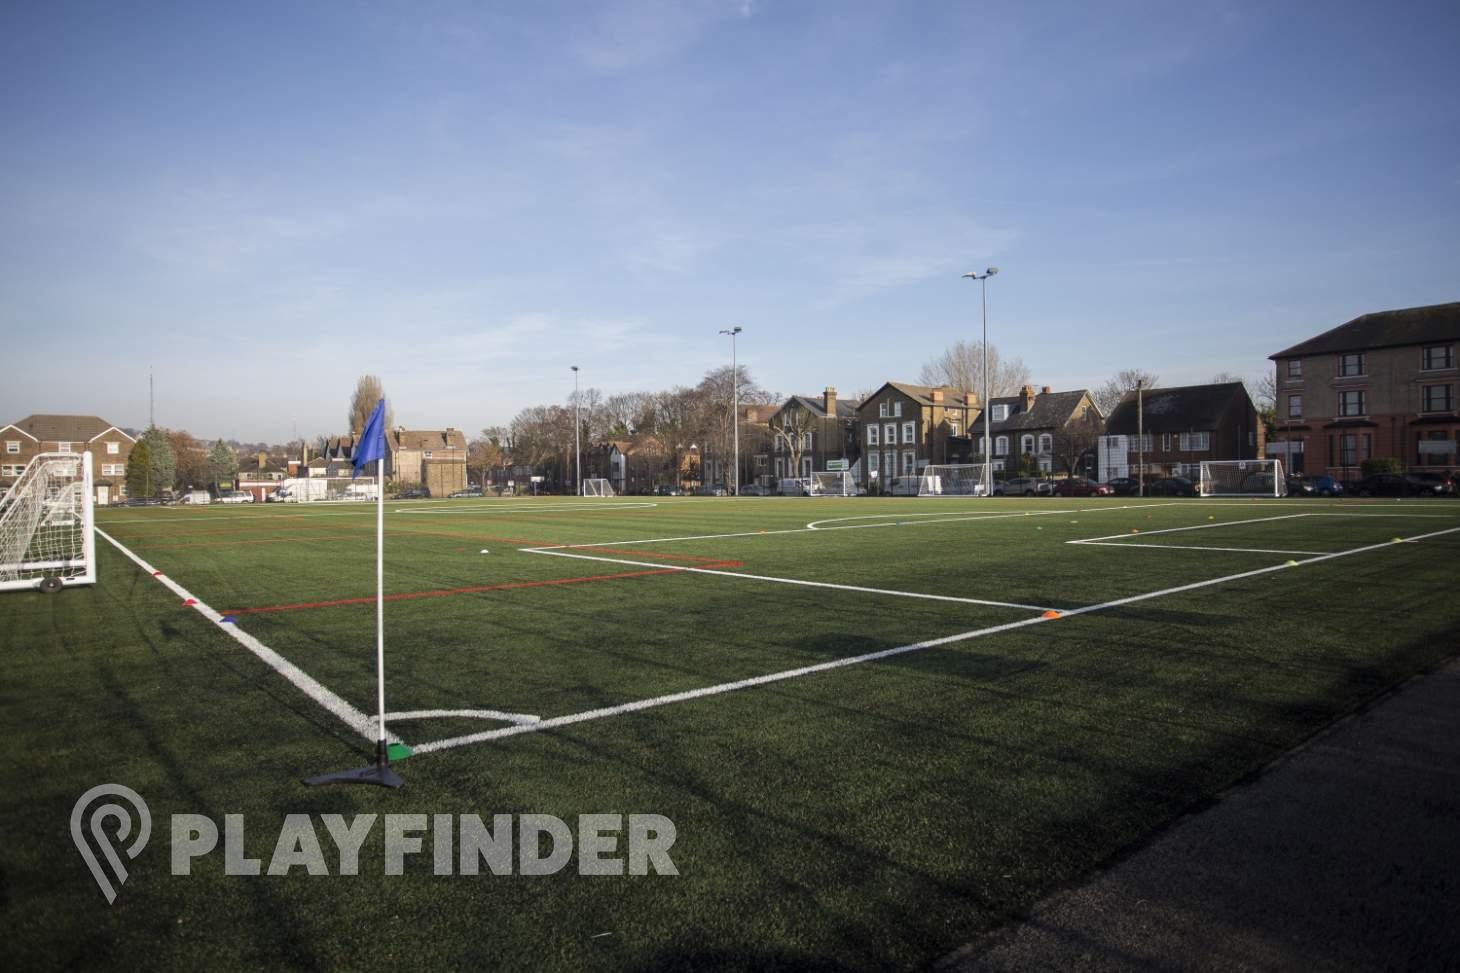 Selhurst Sports Arena 7 a side | 3G Astroturf football pitch